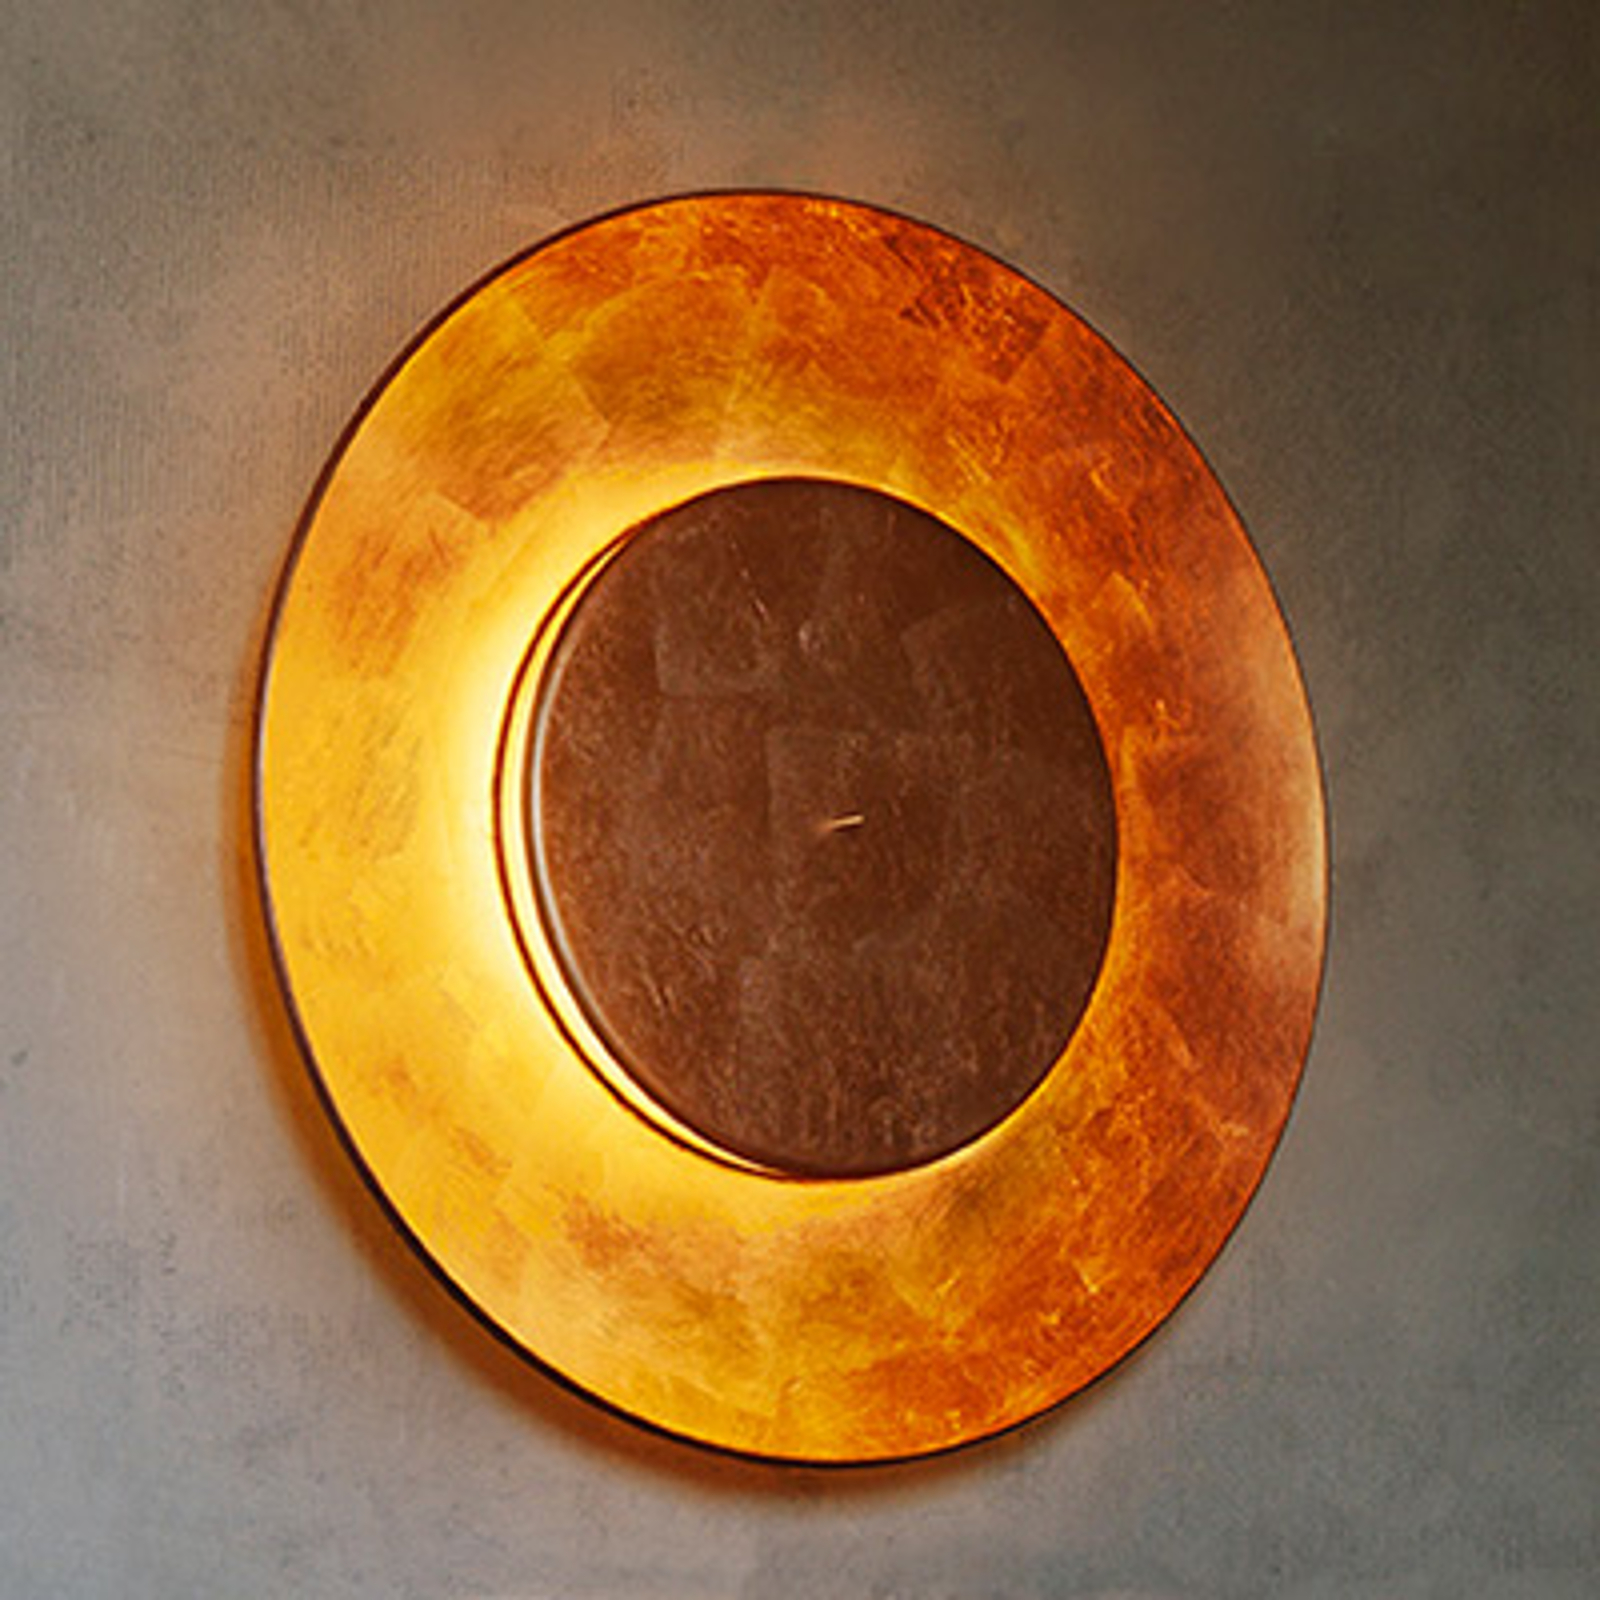 Copper leaf-plated wall light Lunaire 75 cm_3520361_1